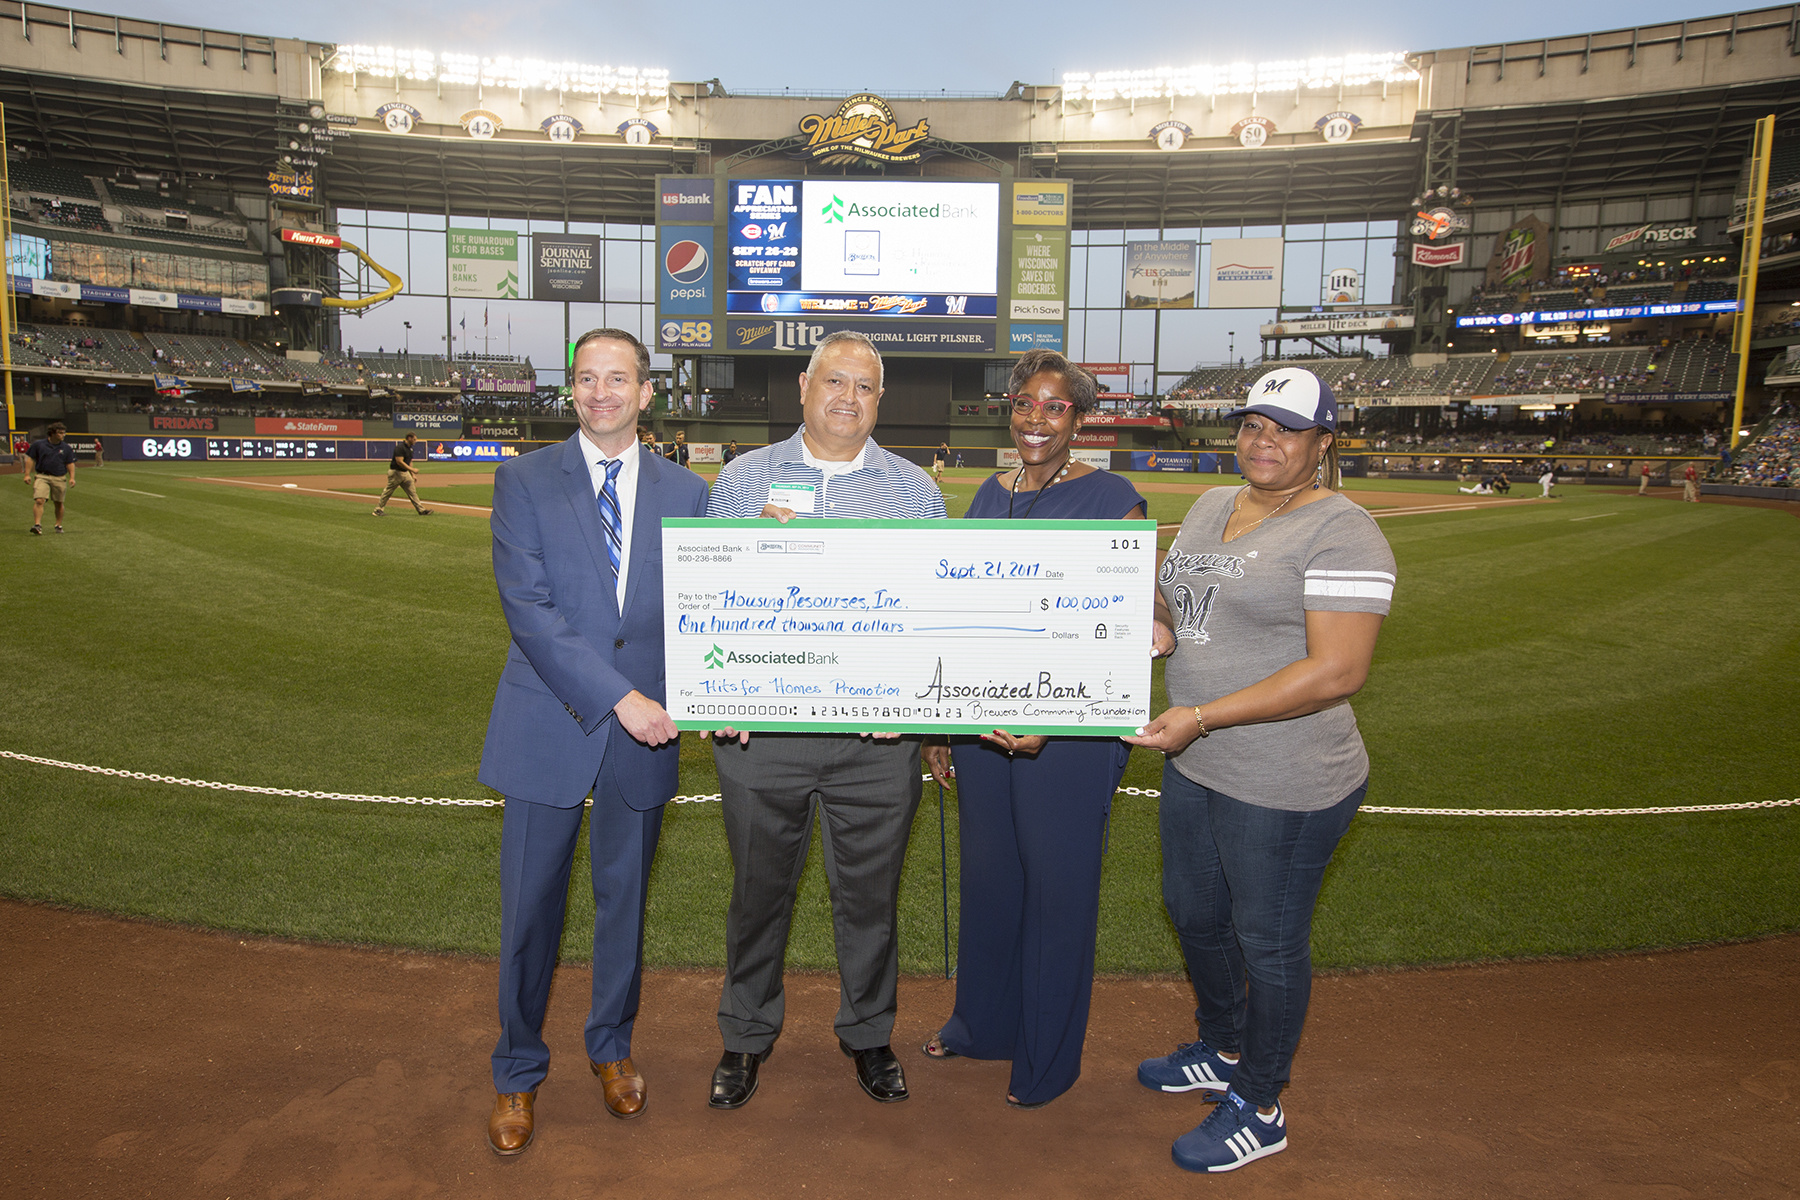 Hits For Homes Program At Miller Park Results In 100 000 Donation For Home Repair Assistance In The Milwaukee Area Associated Bank